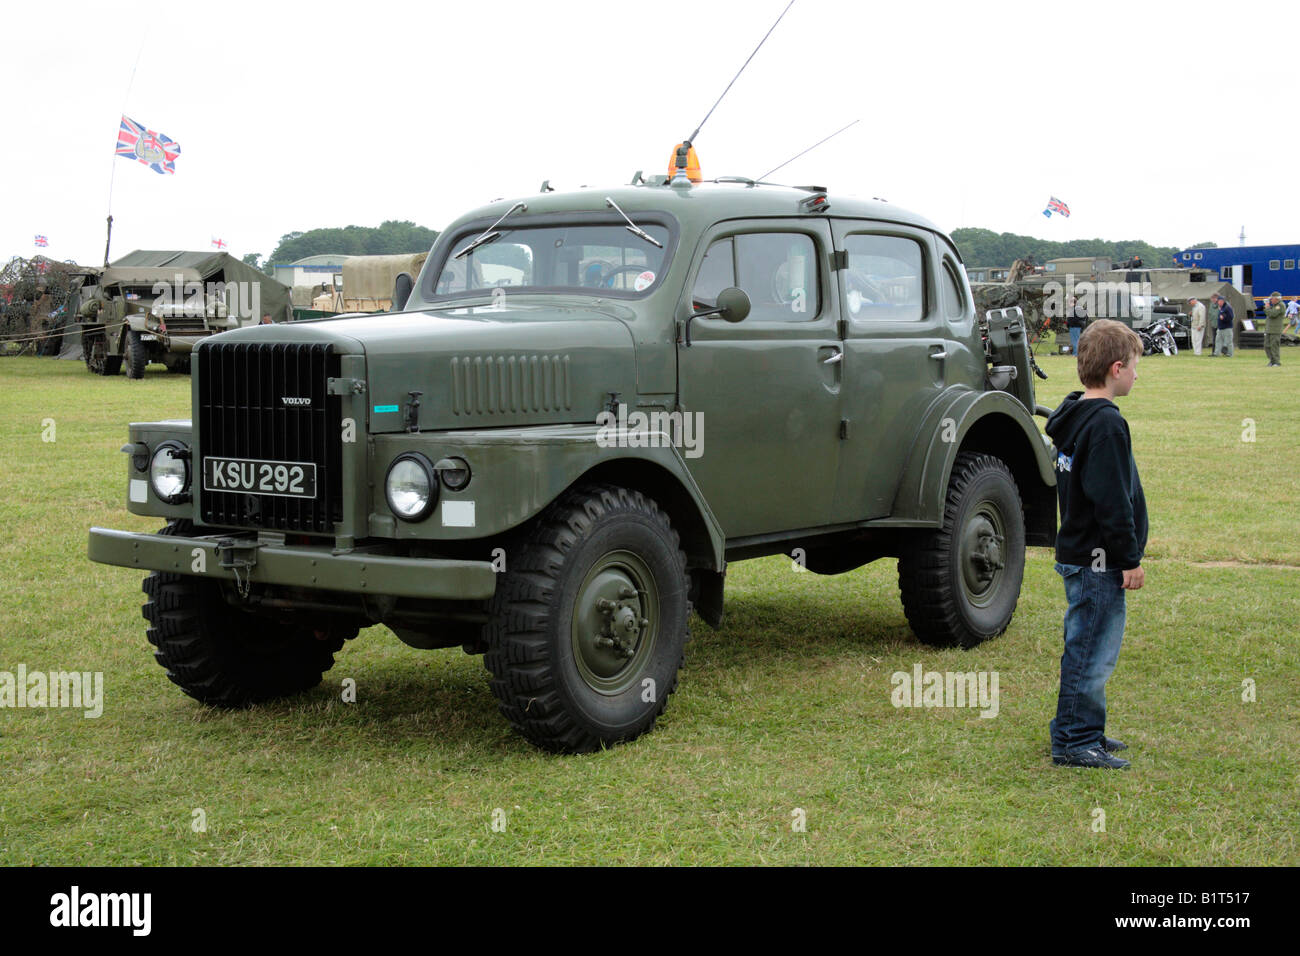 volvo 4x4 military vehicle stock photo royalty free image 18355827 alamy. Black Bedroom Furniture Sets. Home Design Ideas